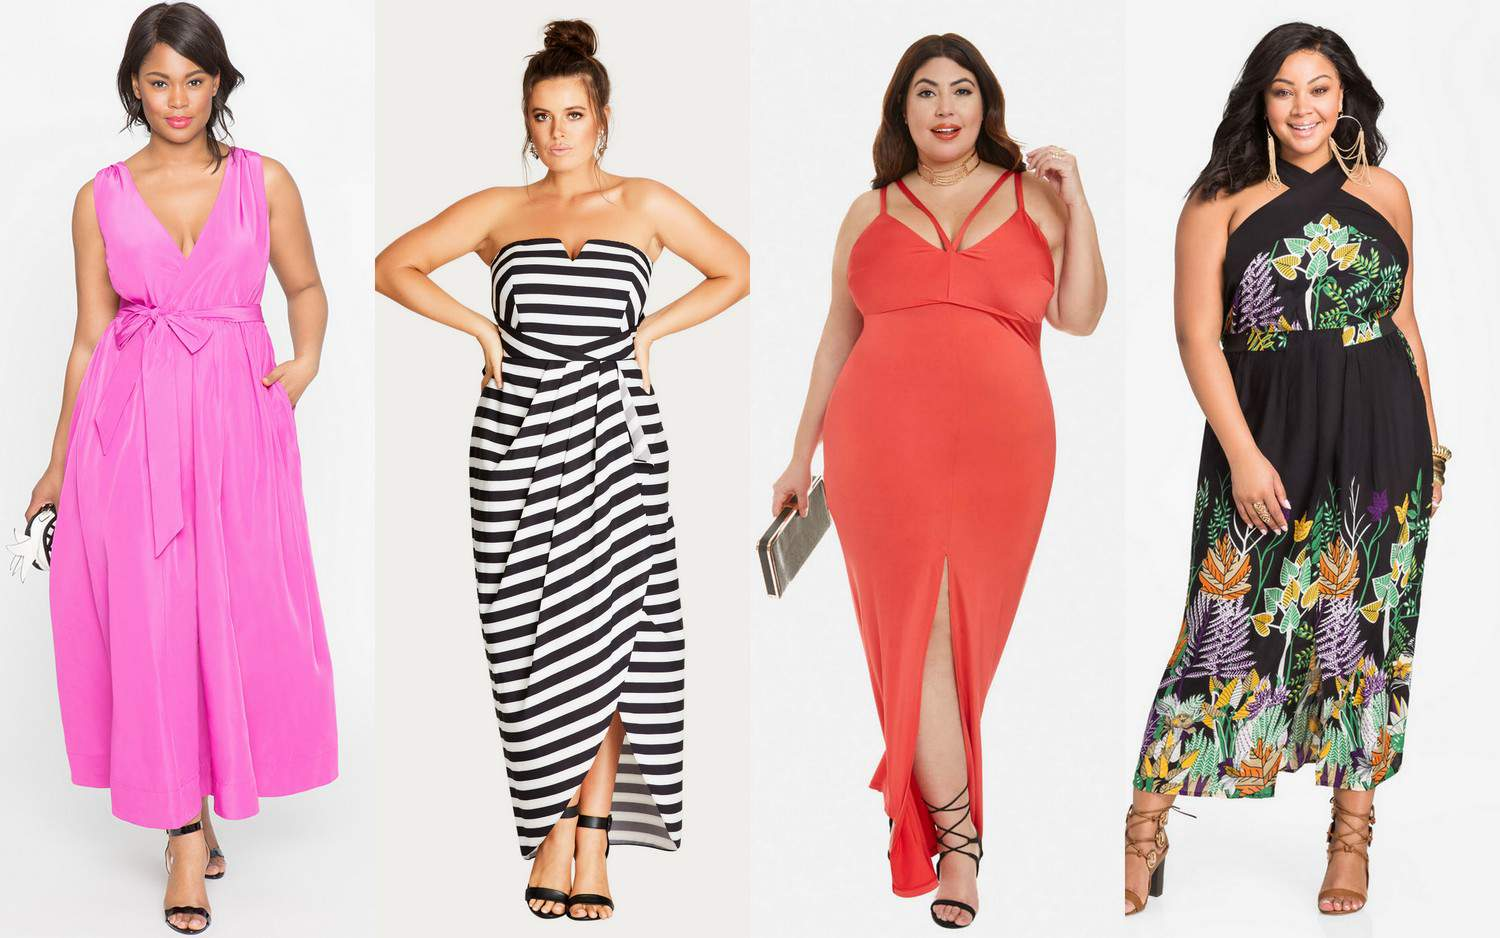 Plus Size Maxi Dresses Are A Spring Staple! Here Are 20 Cute ...